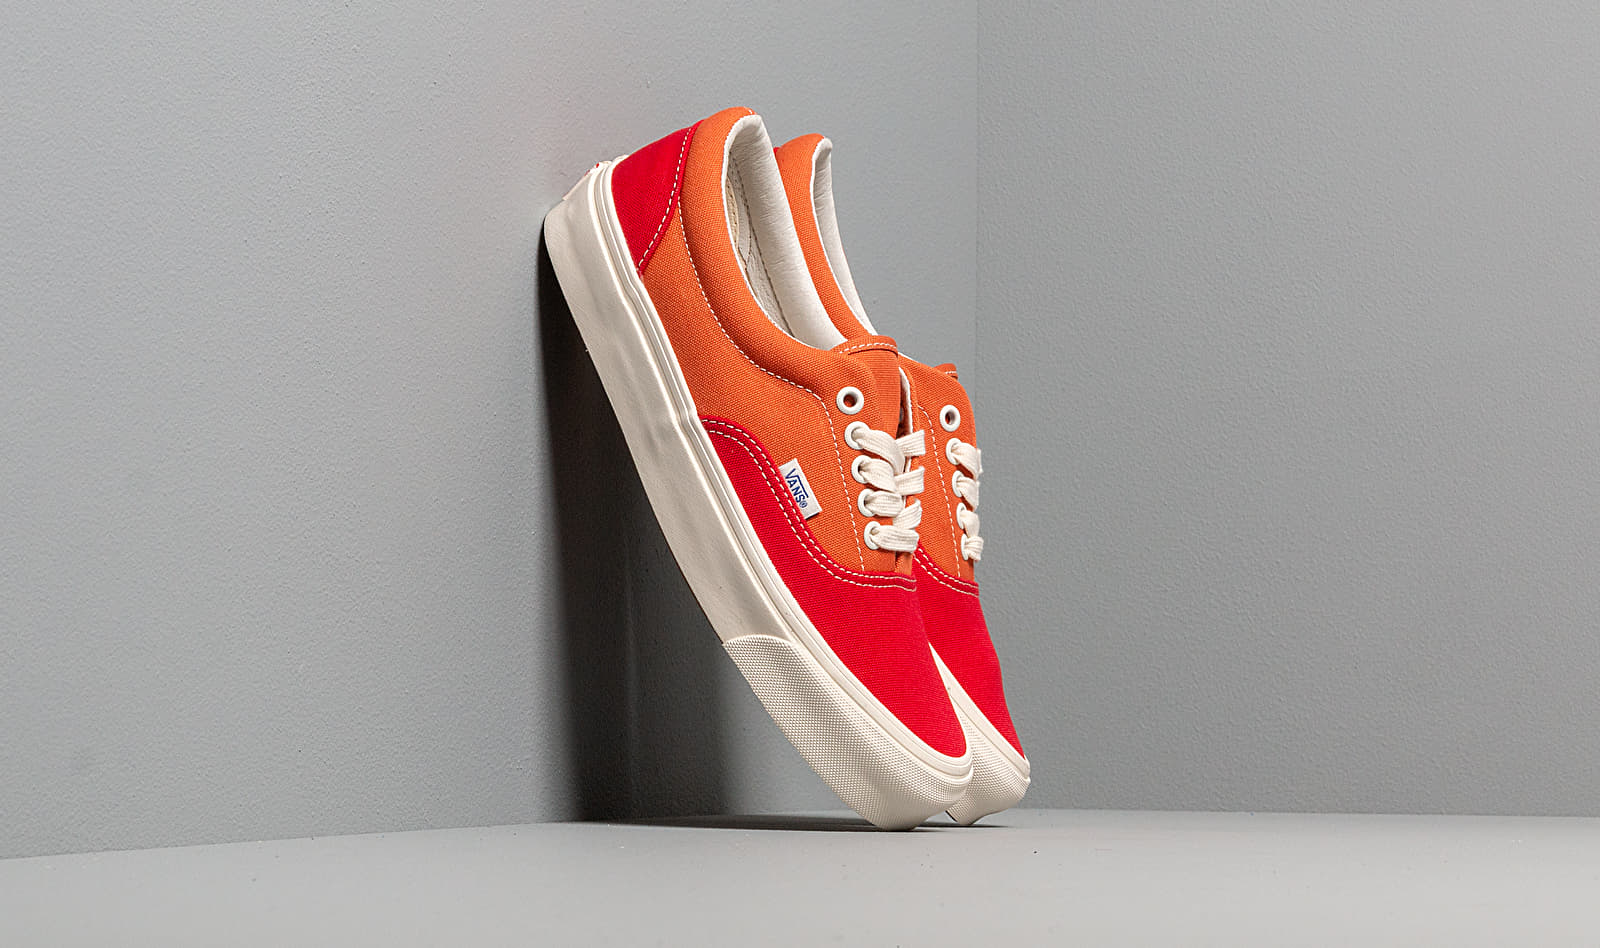 Vans Og Era Lx (Canvas) Racing Red/ Orange EUR 38.5